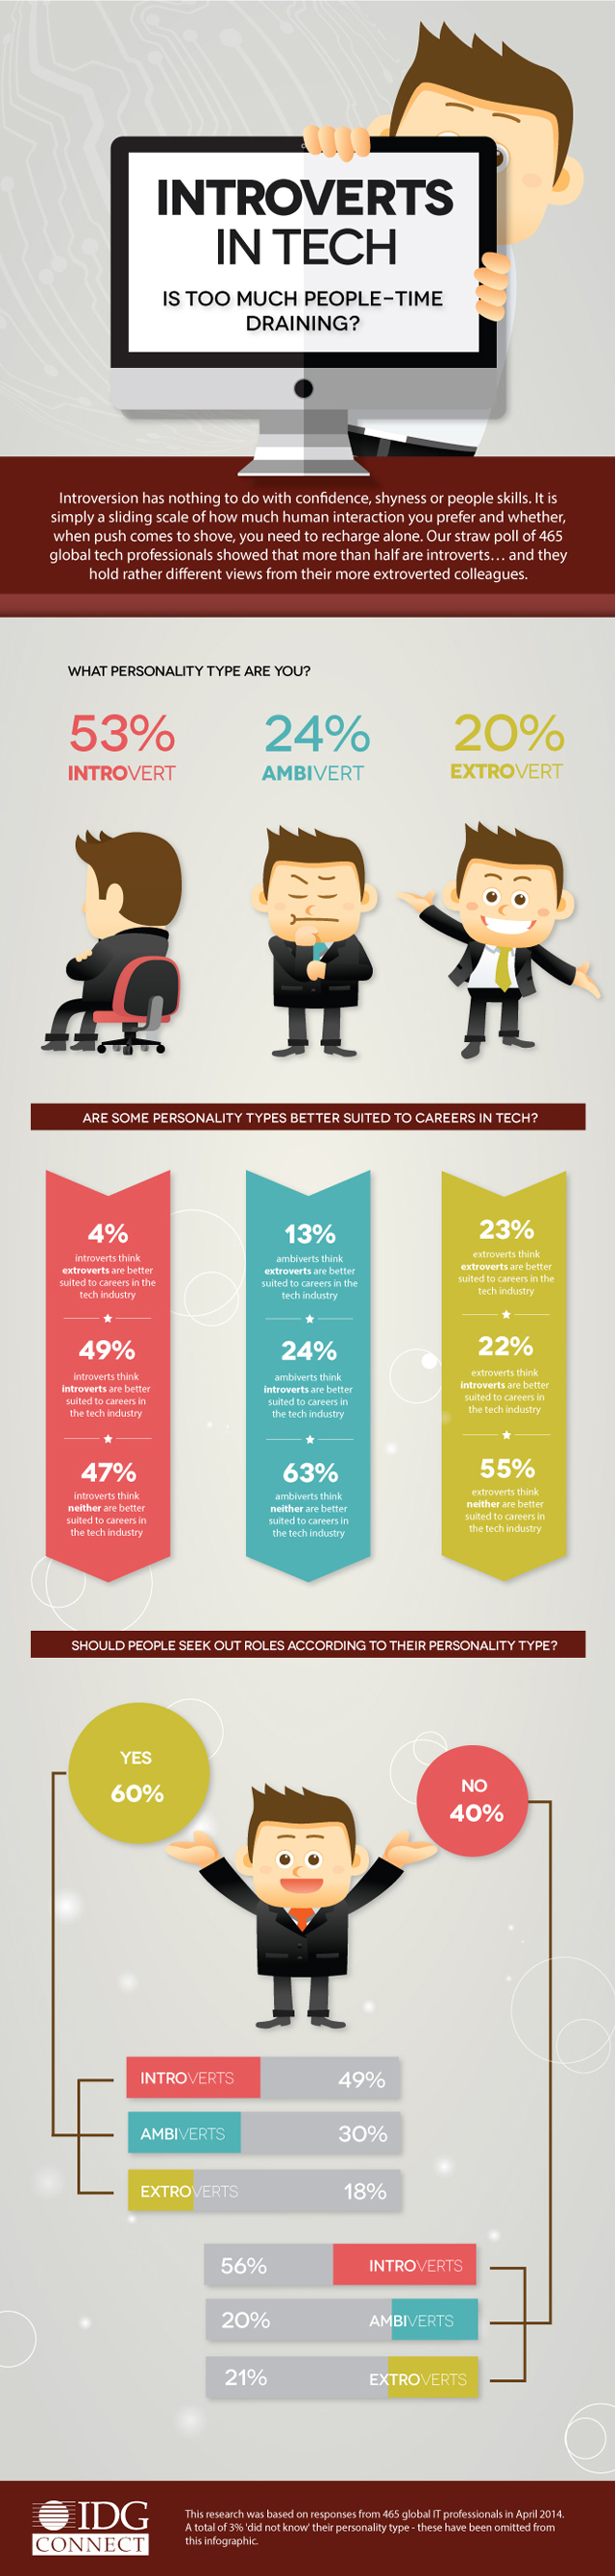 introverts-in-tech-infographic